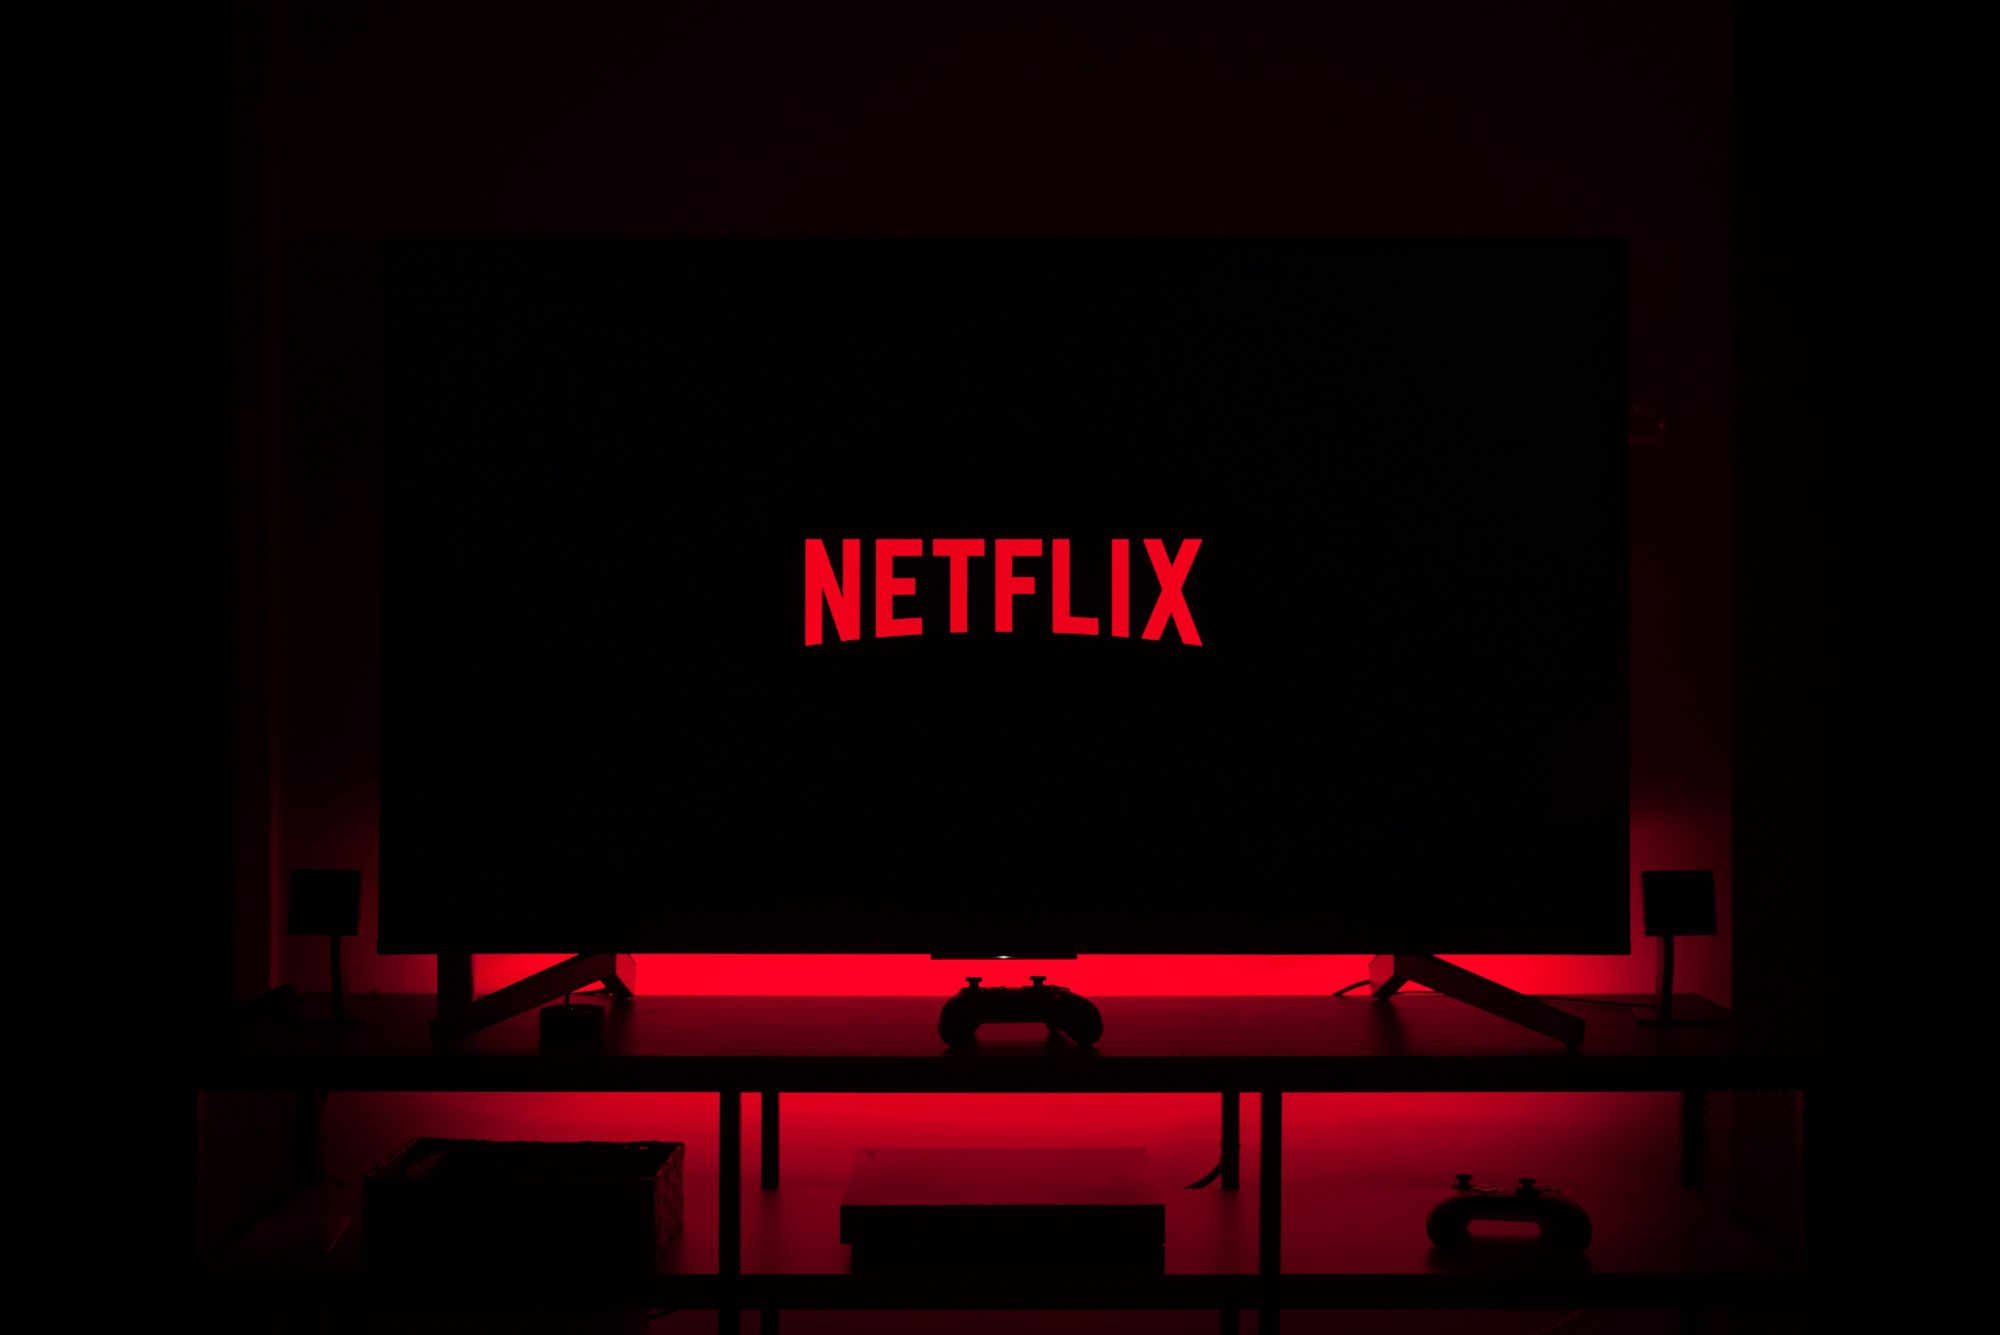 Here's How Netflix's New Watch Timer Feature Will Work